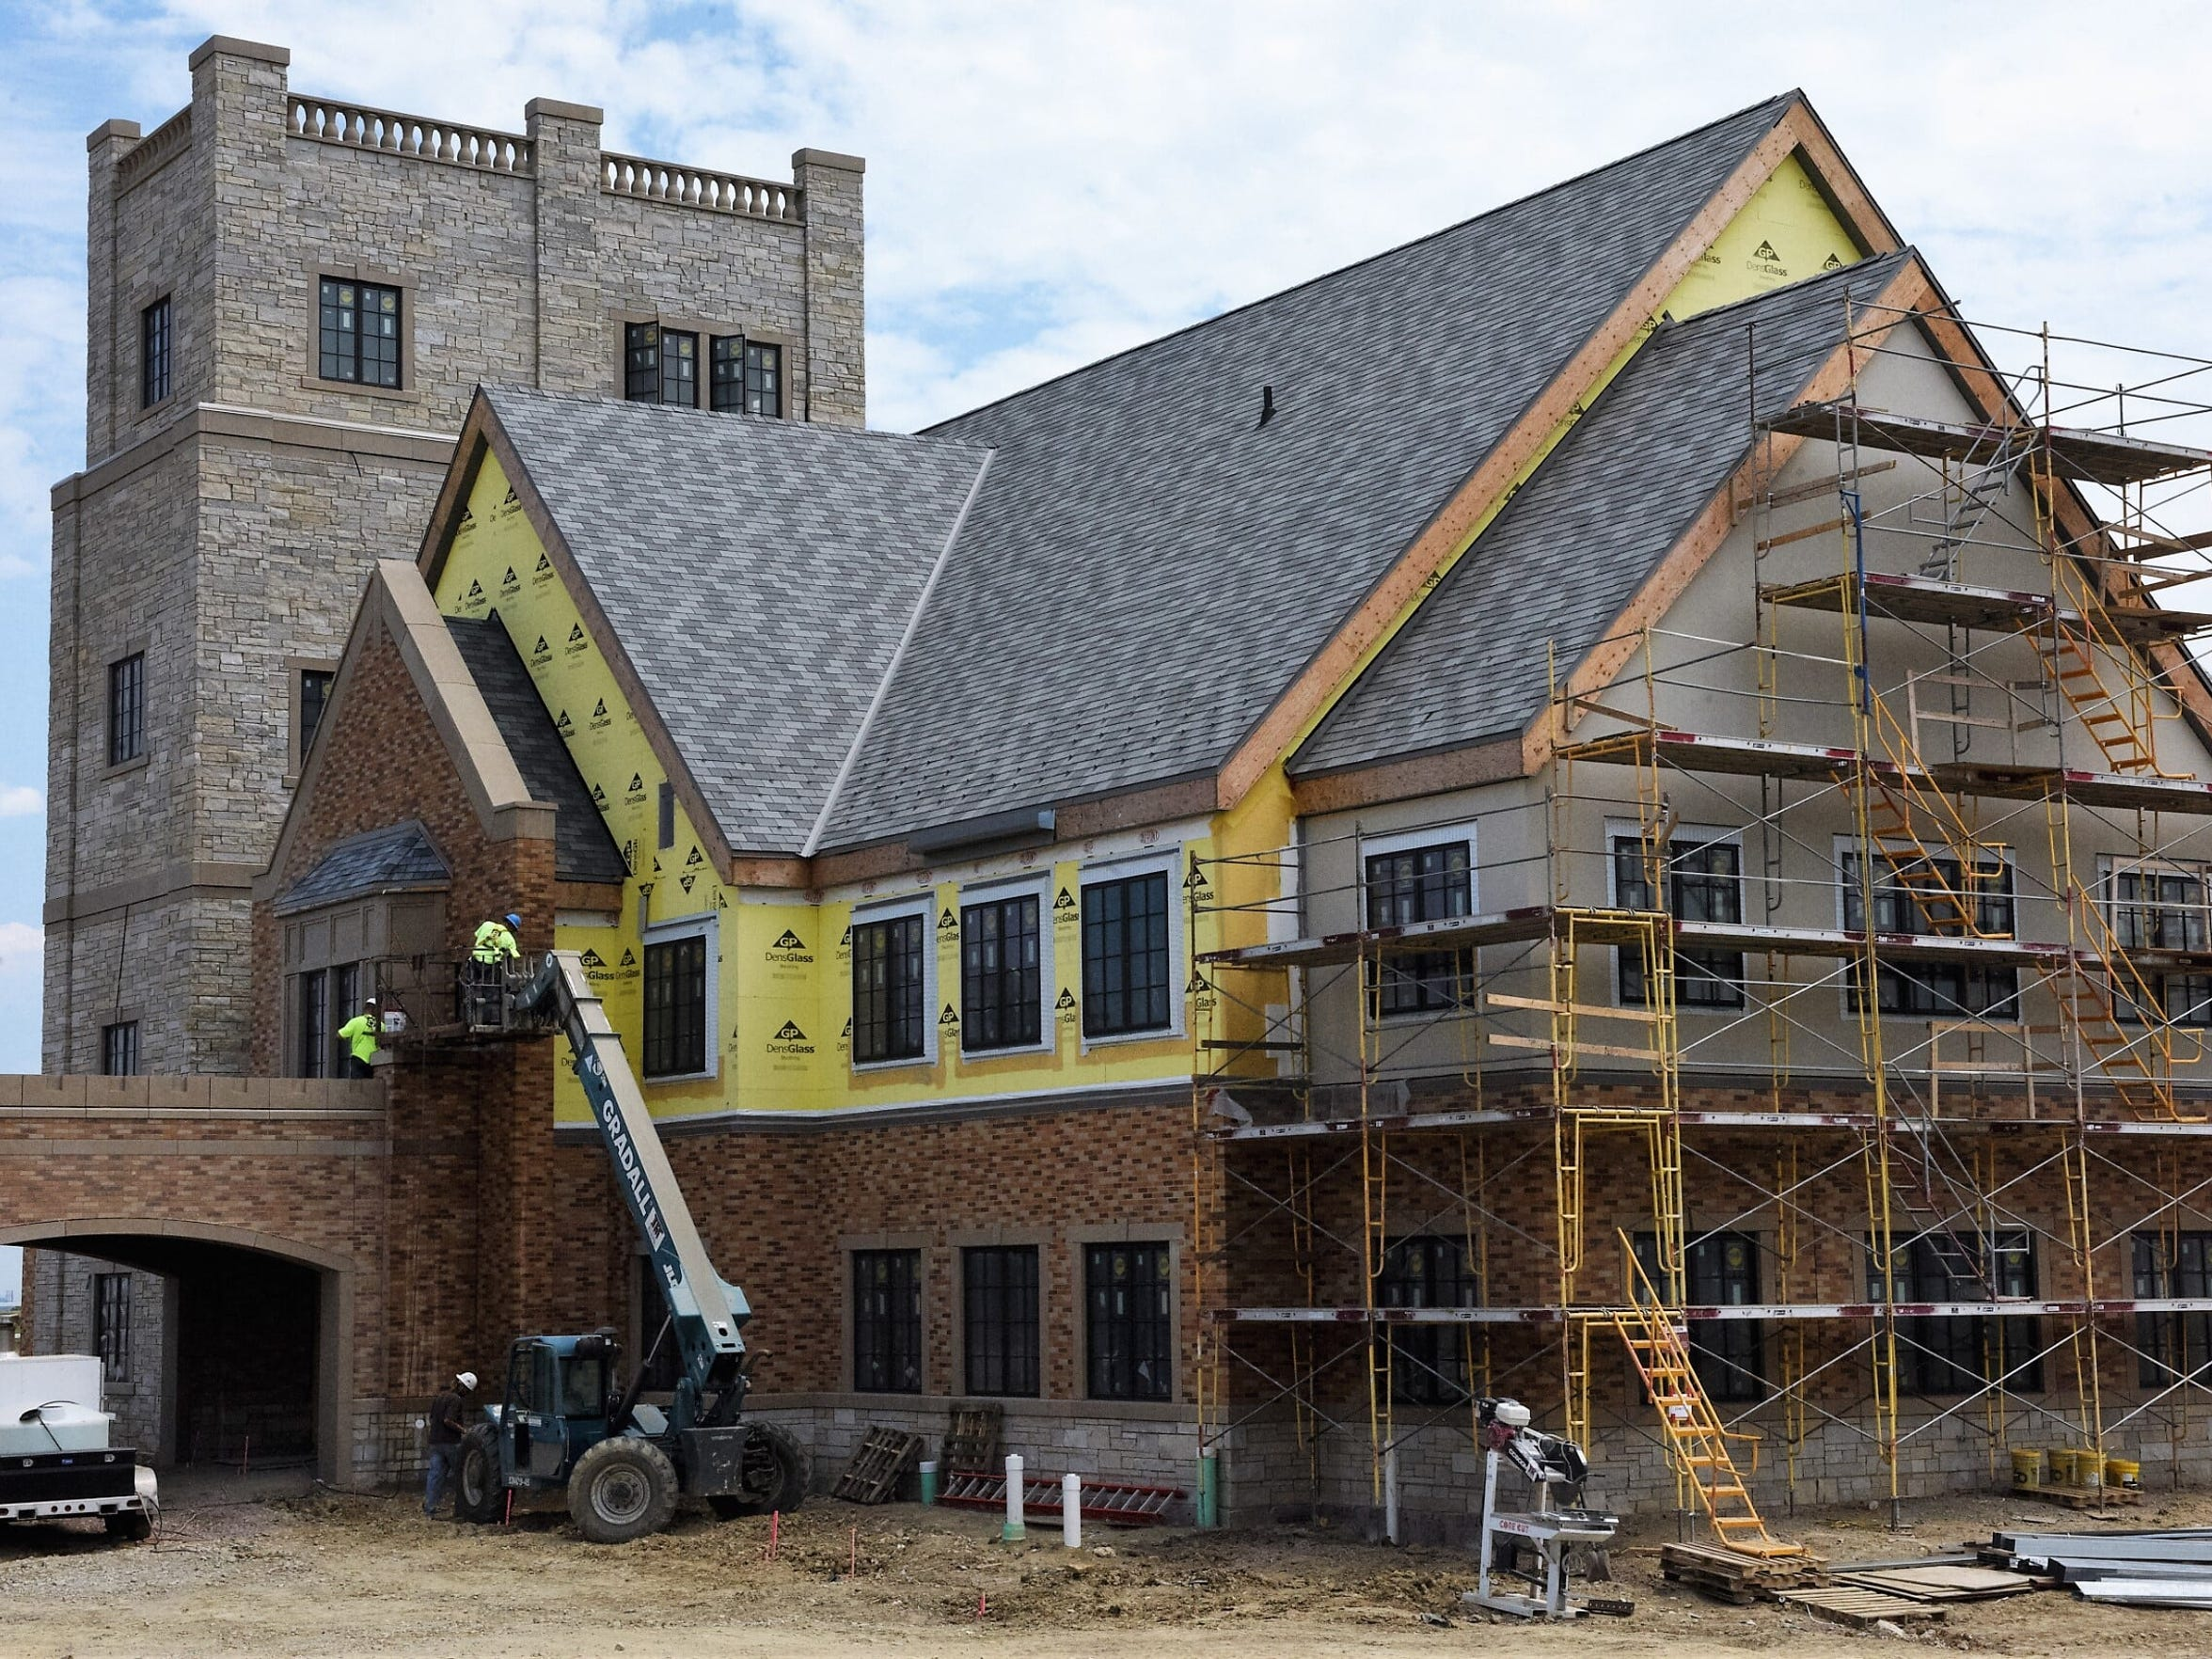 The Sanford Foundation House will become the new office for the Sanford Health Foundation and is located near the Sanford corporate campus northeast of Sioux Falls near Interstate I-229.